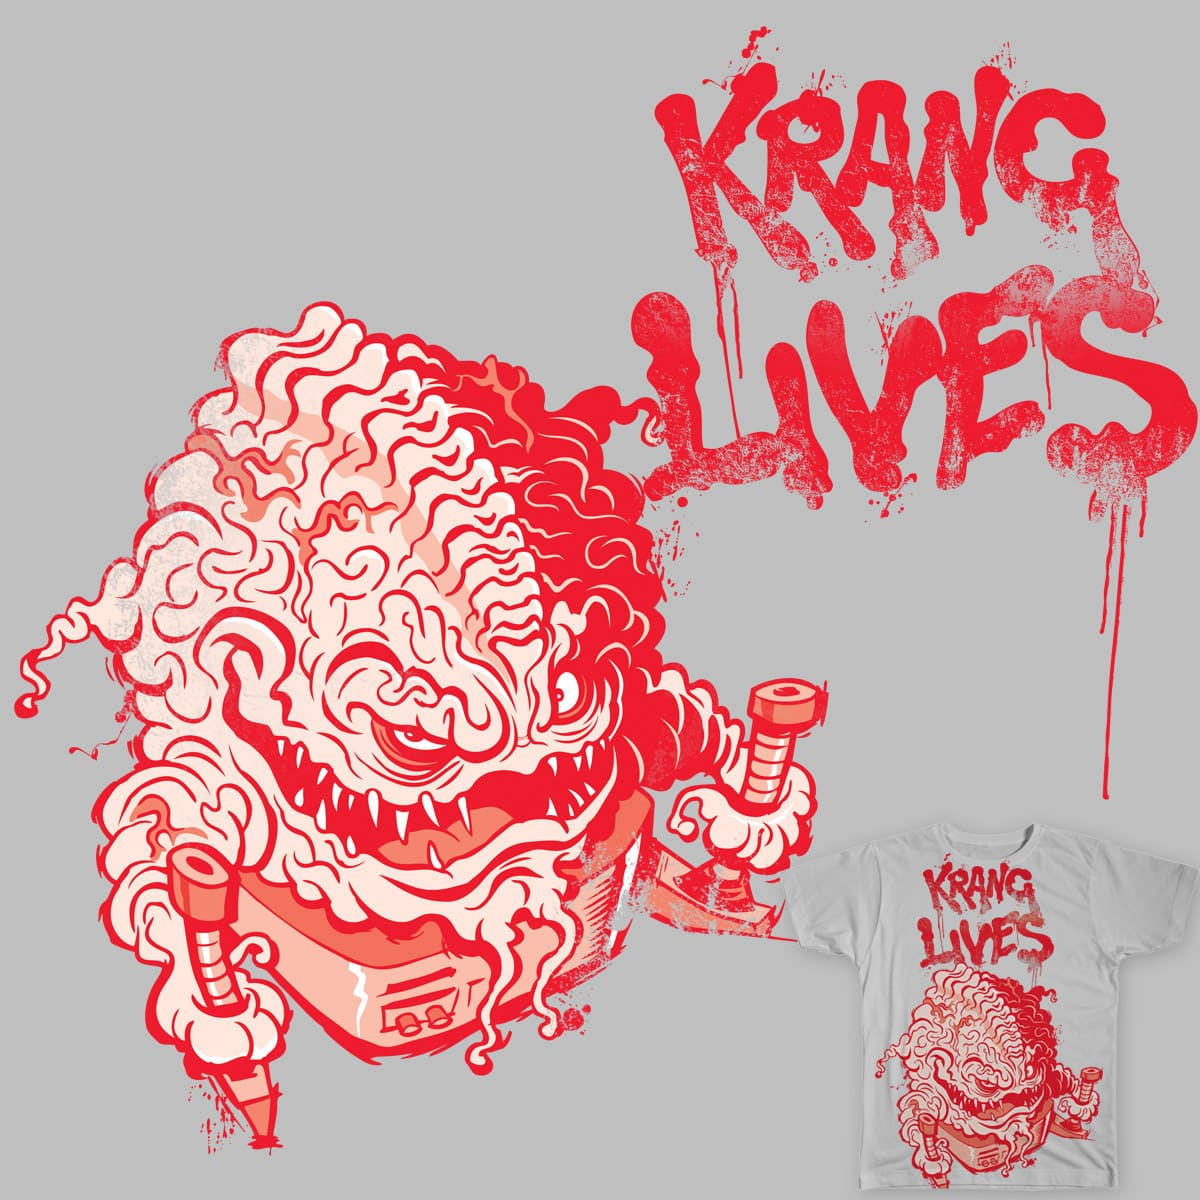 KRANG LIVES! by Figzy8 on Threadless